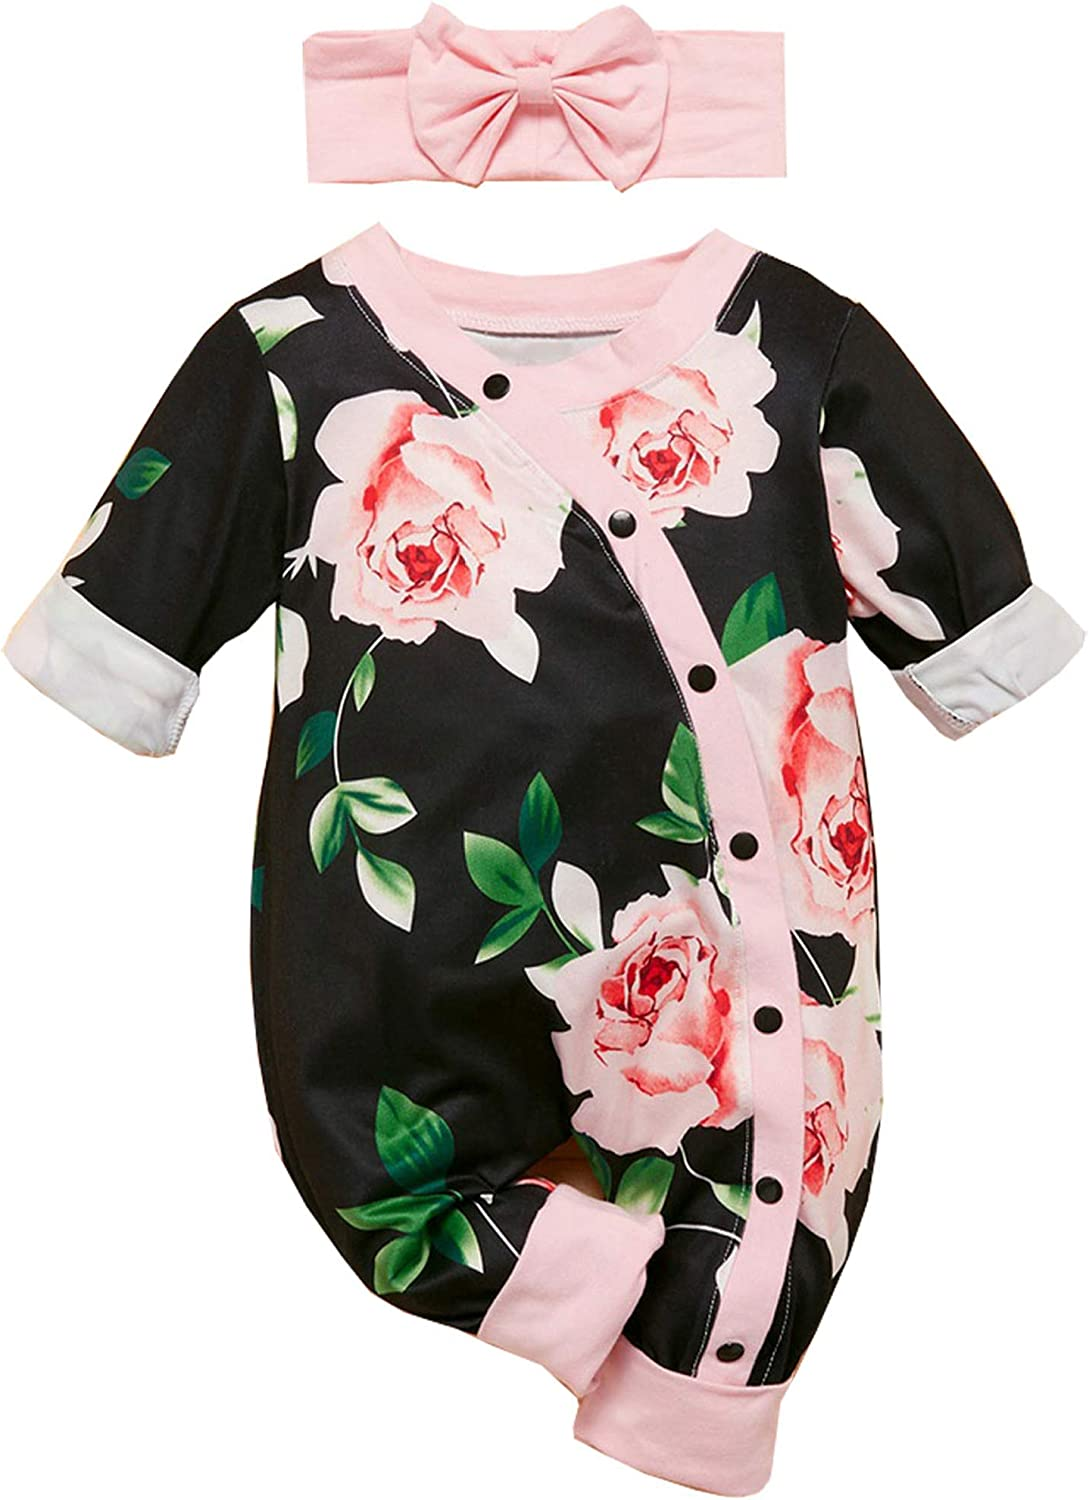 Newborn Baby Girl 2021 autumn and winter new Clothes Floral Footless Jum Romper Long Sleeve OFFicial mail order